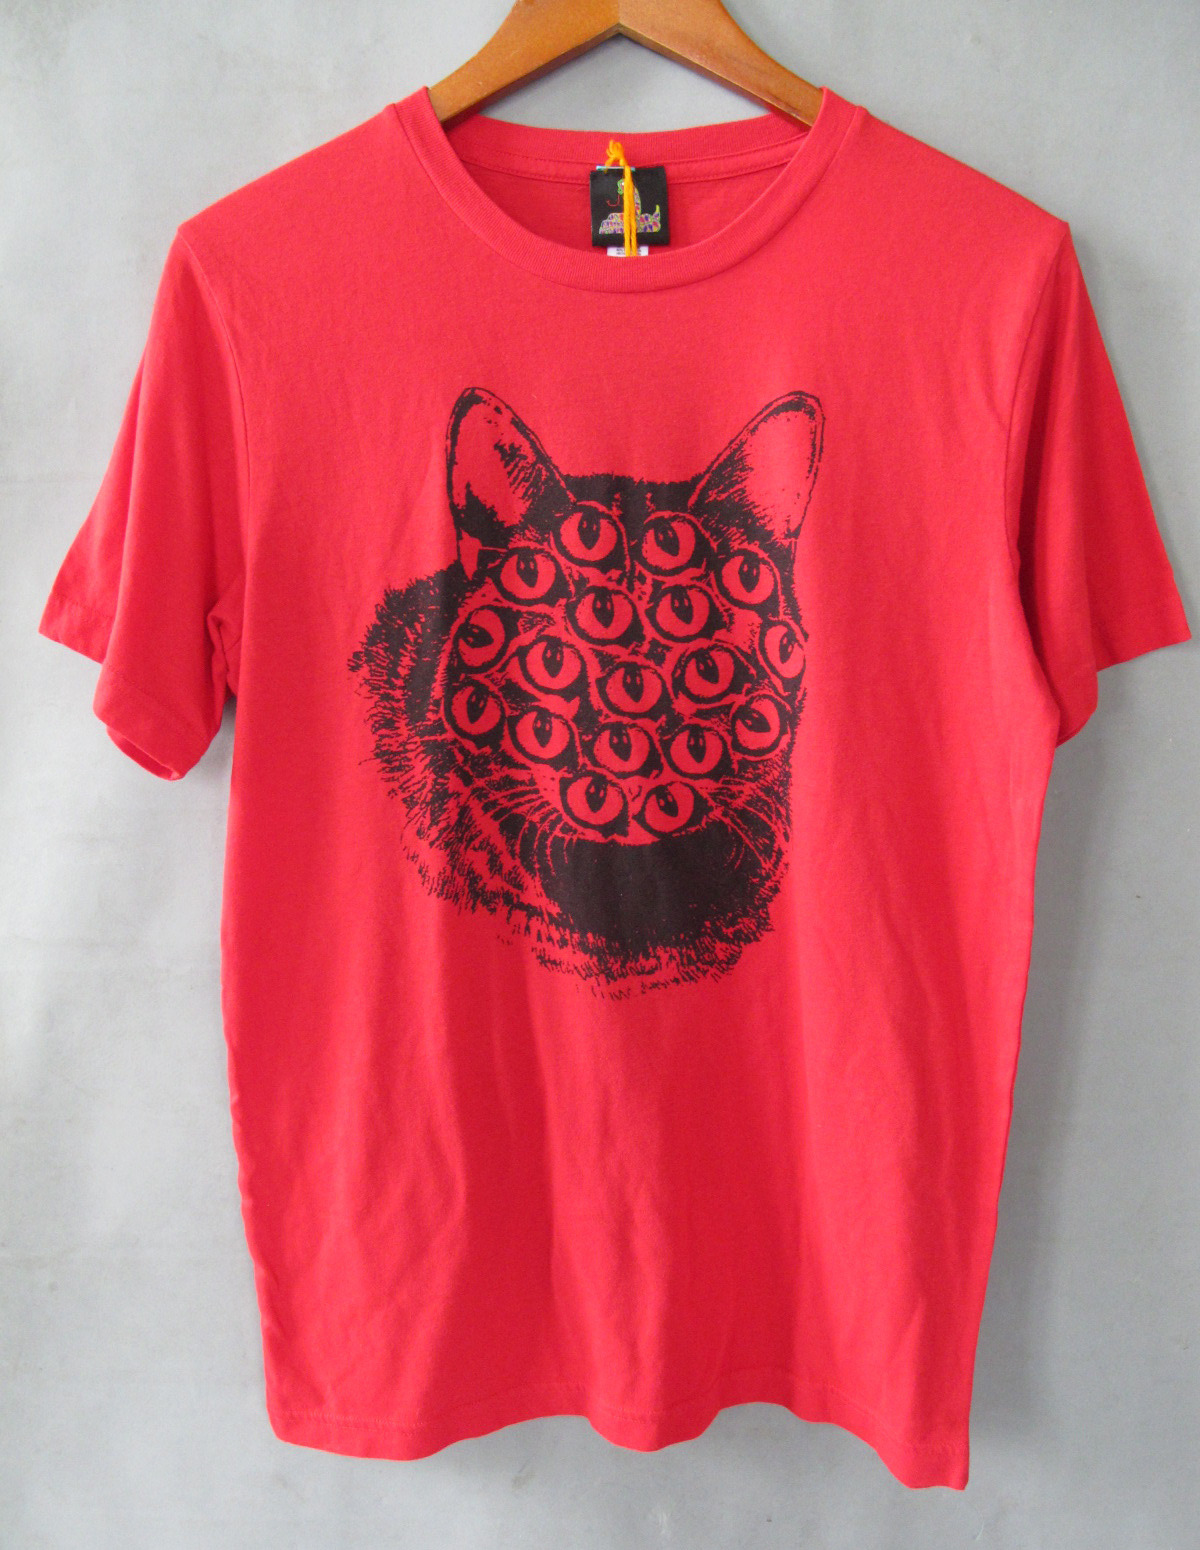 Guys Red Mutant Kitty Tee by Pretty Snake !!  http://www.etsy.com/shop/PrettySnake?ref=si_shop